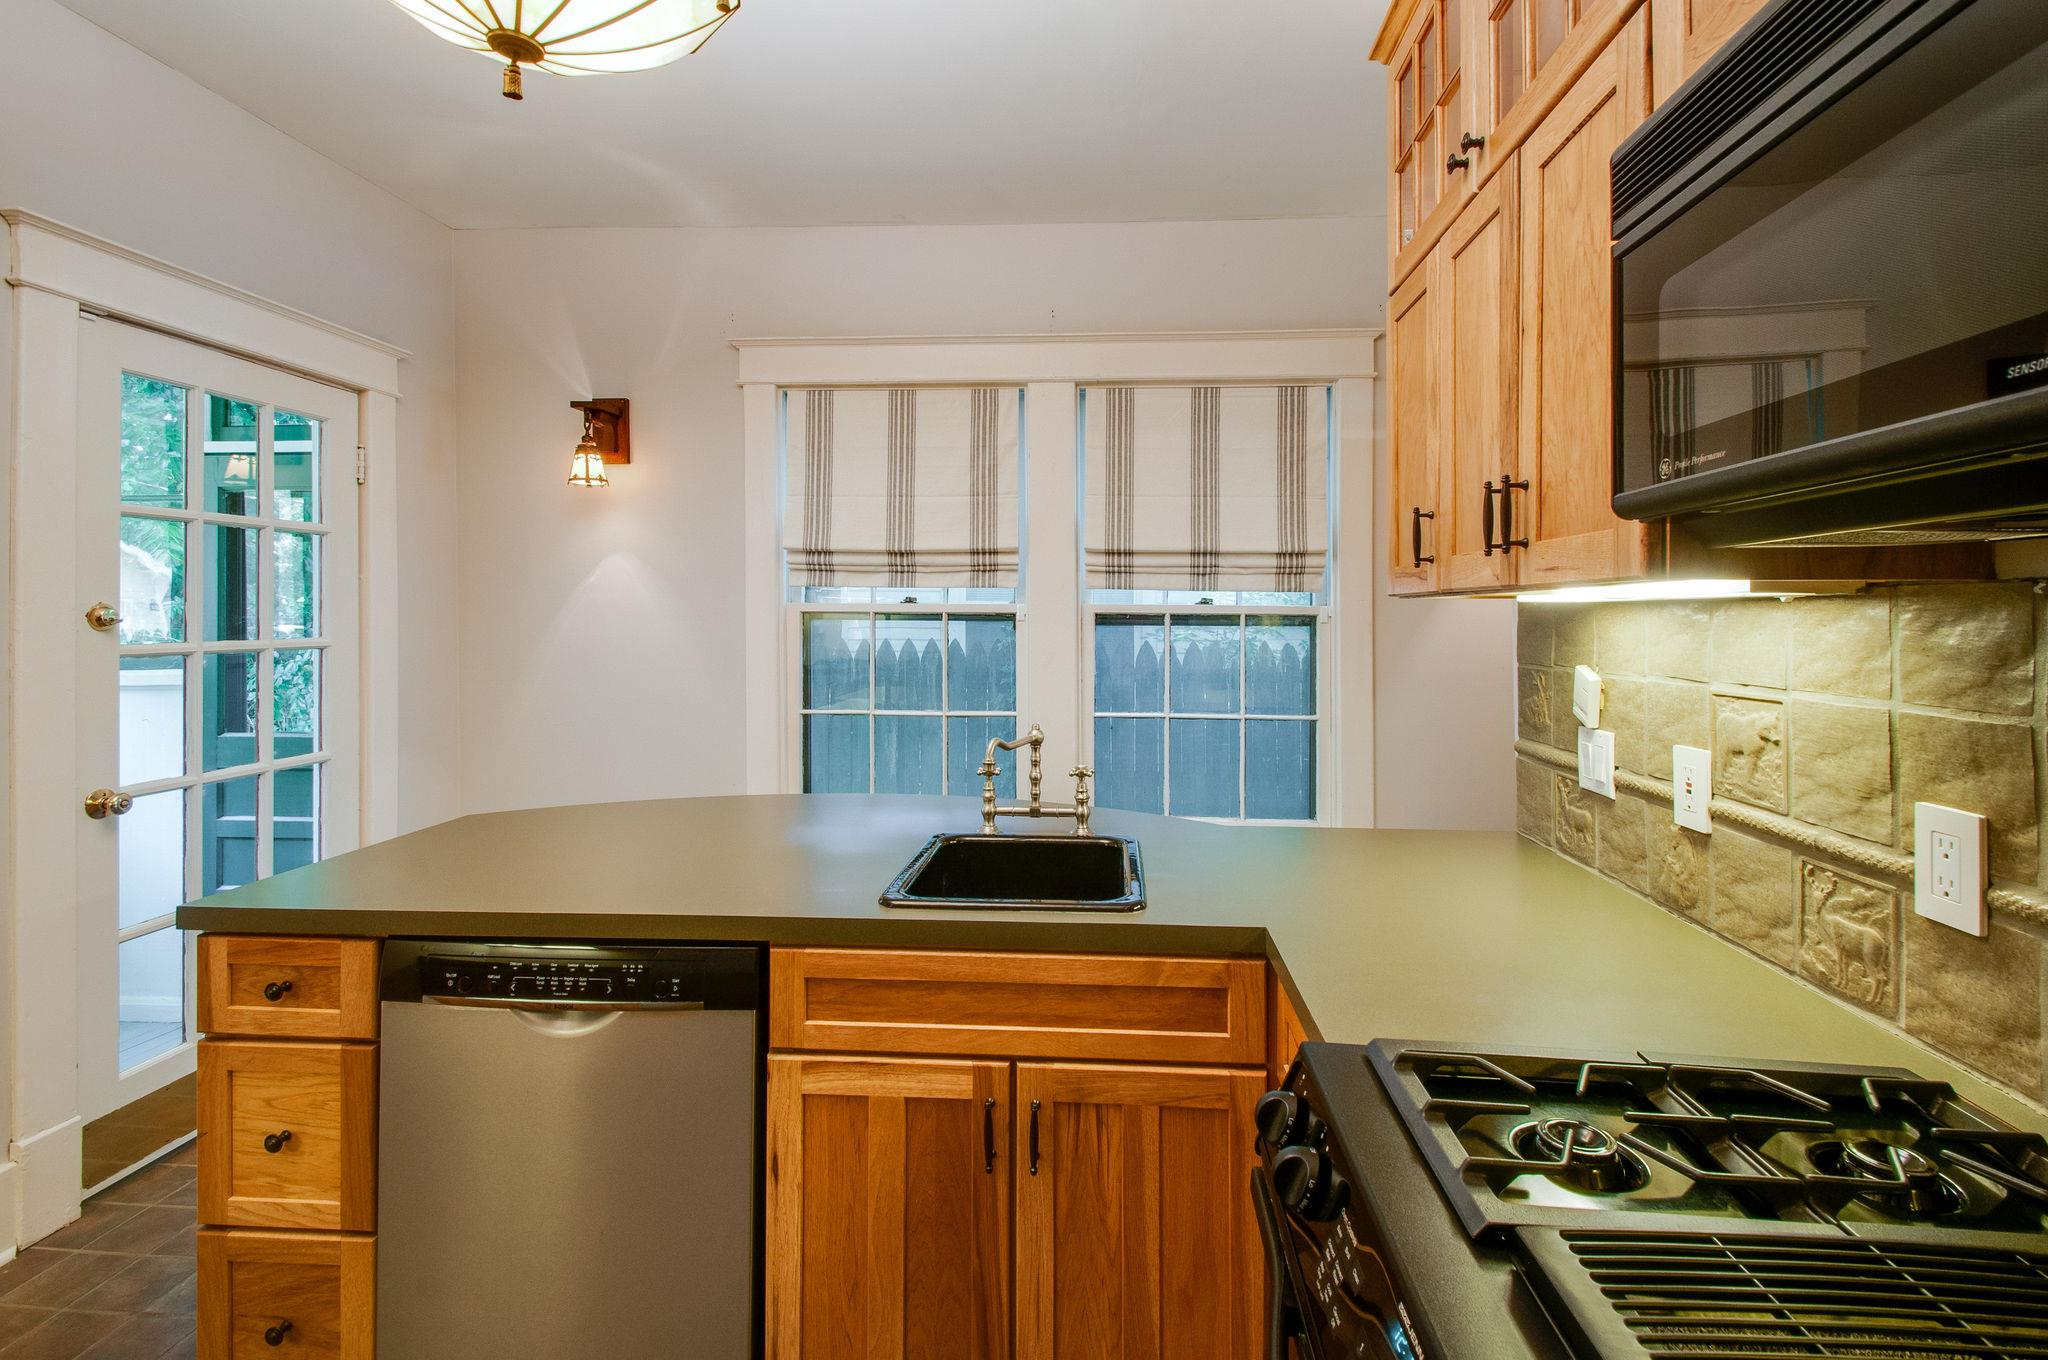 Our 1920s Bungalow Kitchen - this space has been renovated out of its period charm. We plan to restore it.